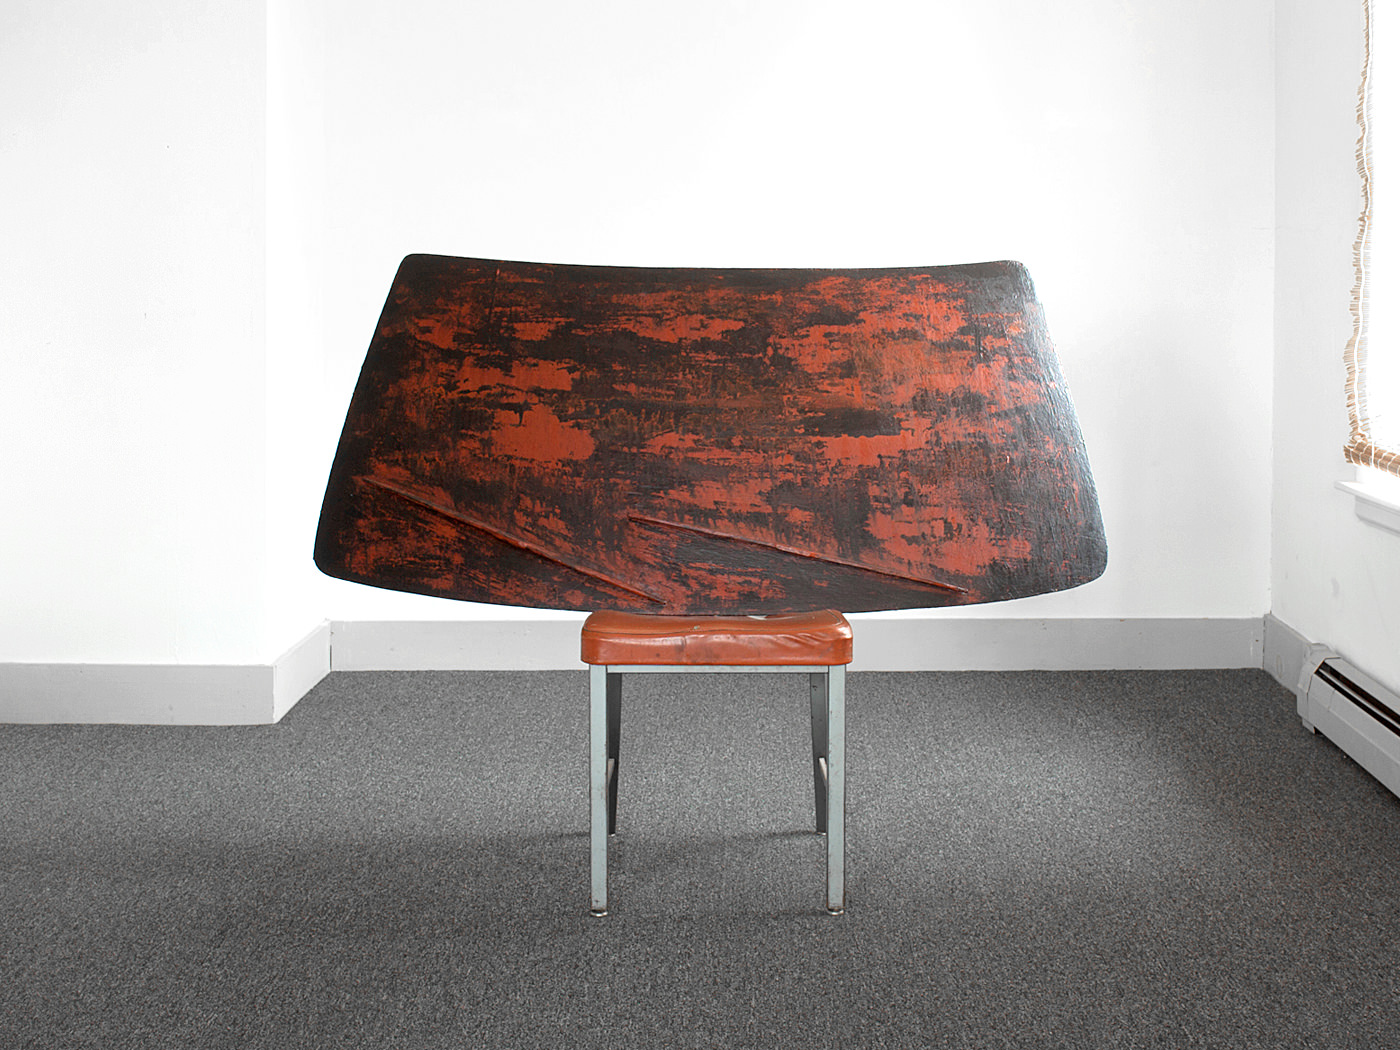 Red Windshield / Carved & Painted Wood with Chair. 2012.